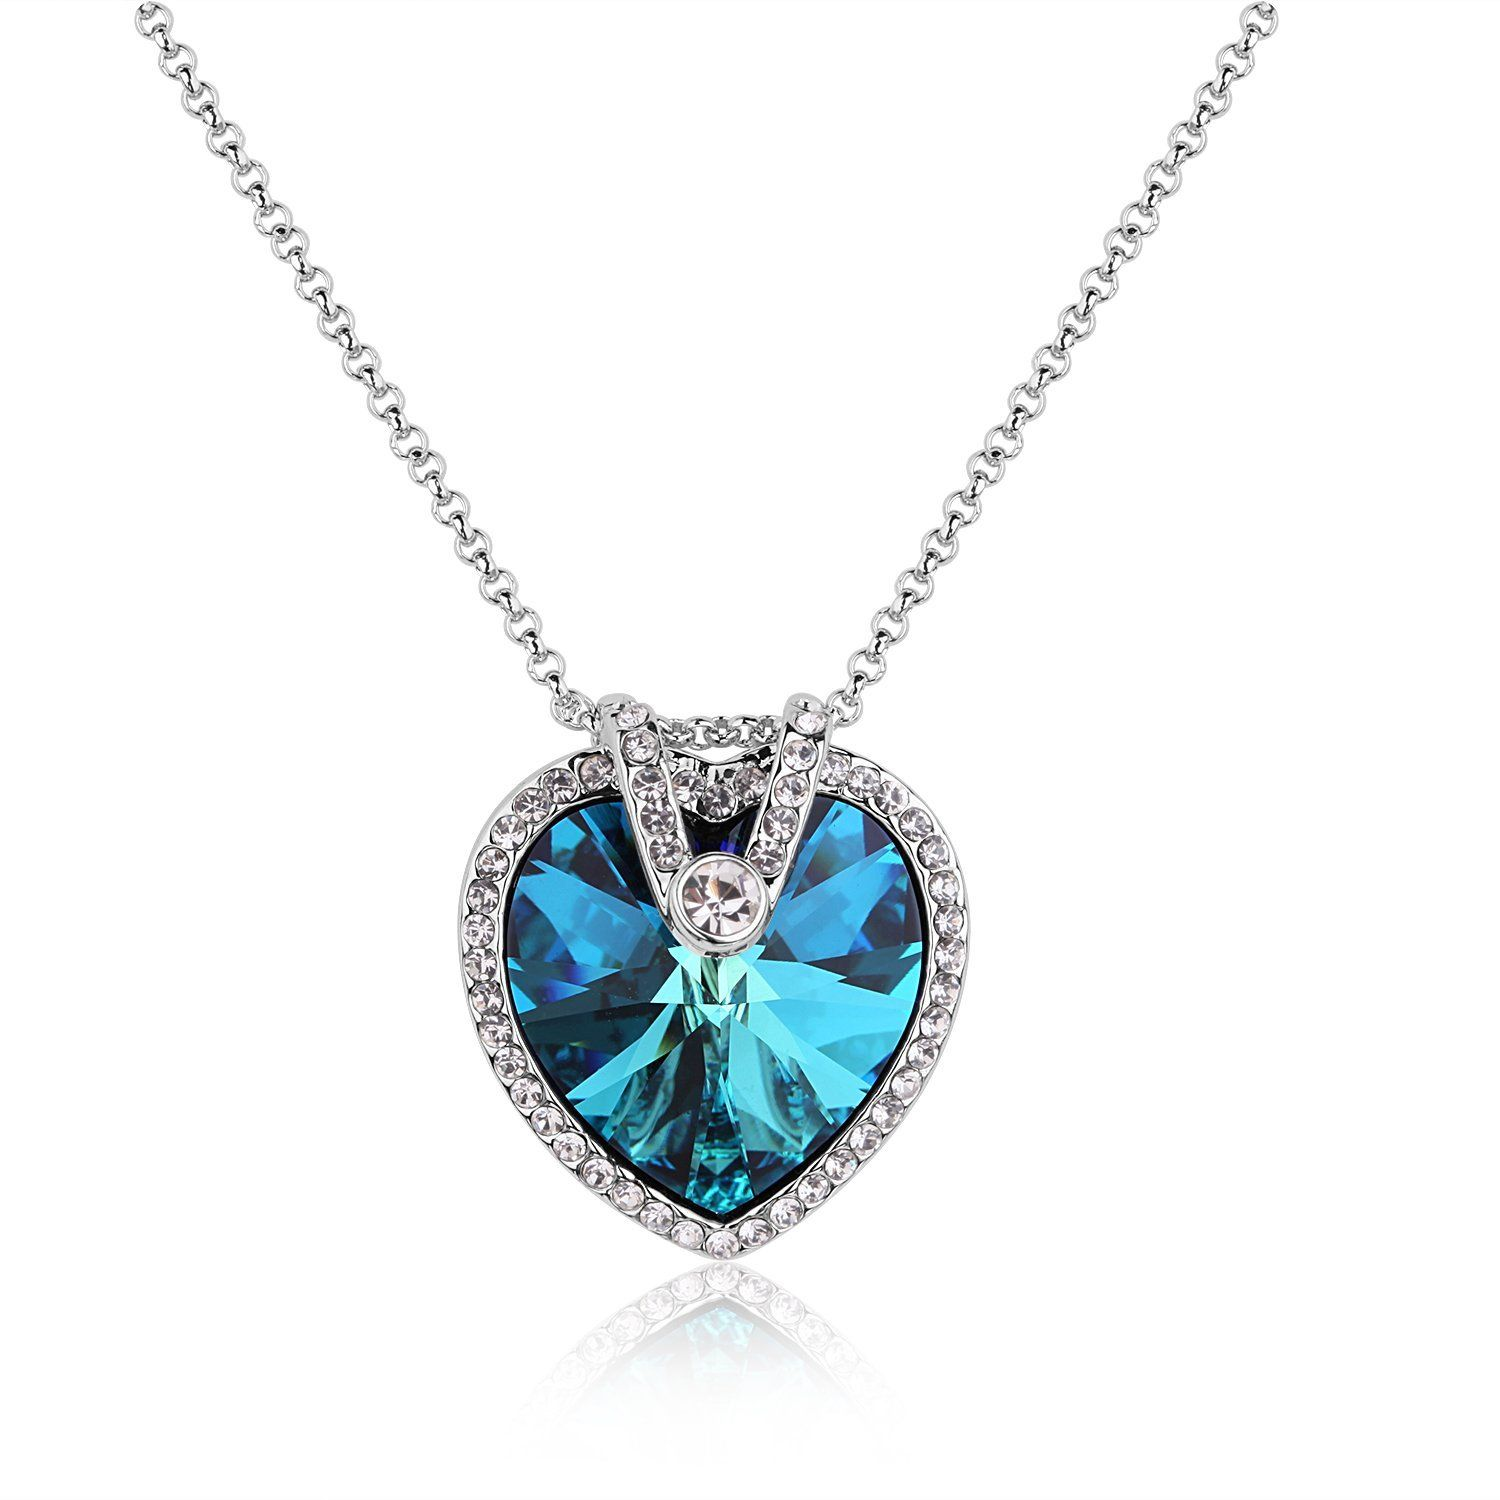 Heart Necklace, Blue Crystal Diamond Pendant Necklaces for